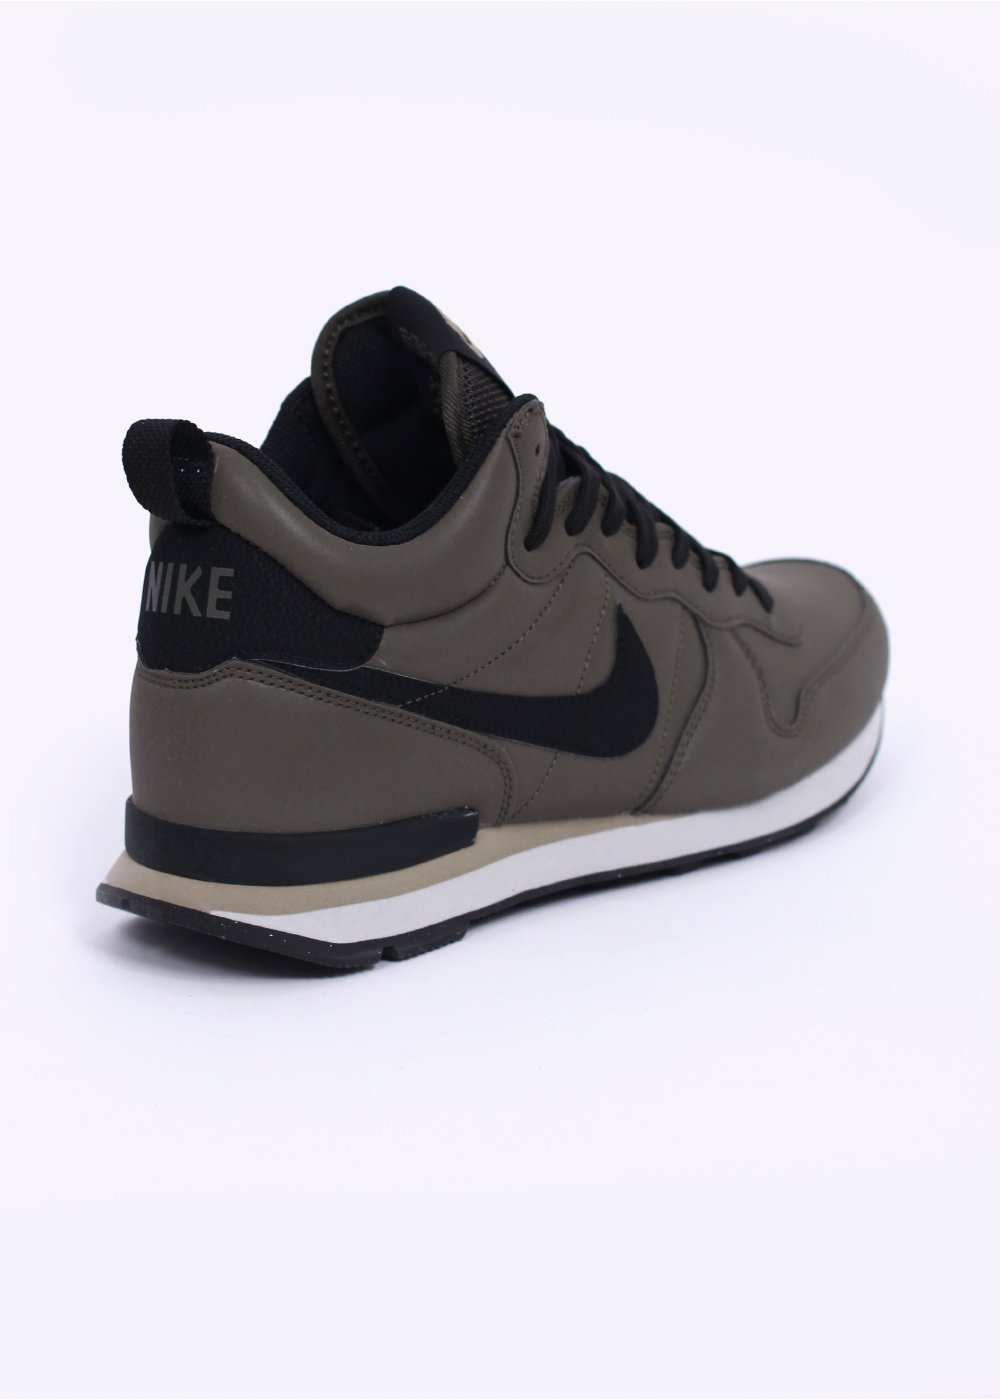 nike qs internationalist mid khaki. Black Bedroom Furniture Sets. Home Design Ideas